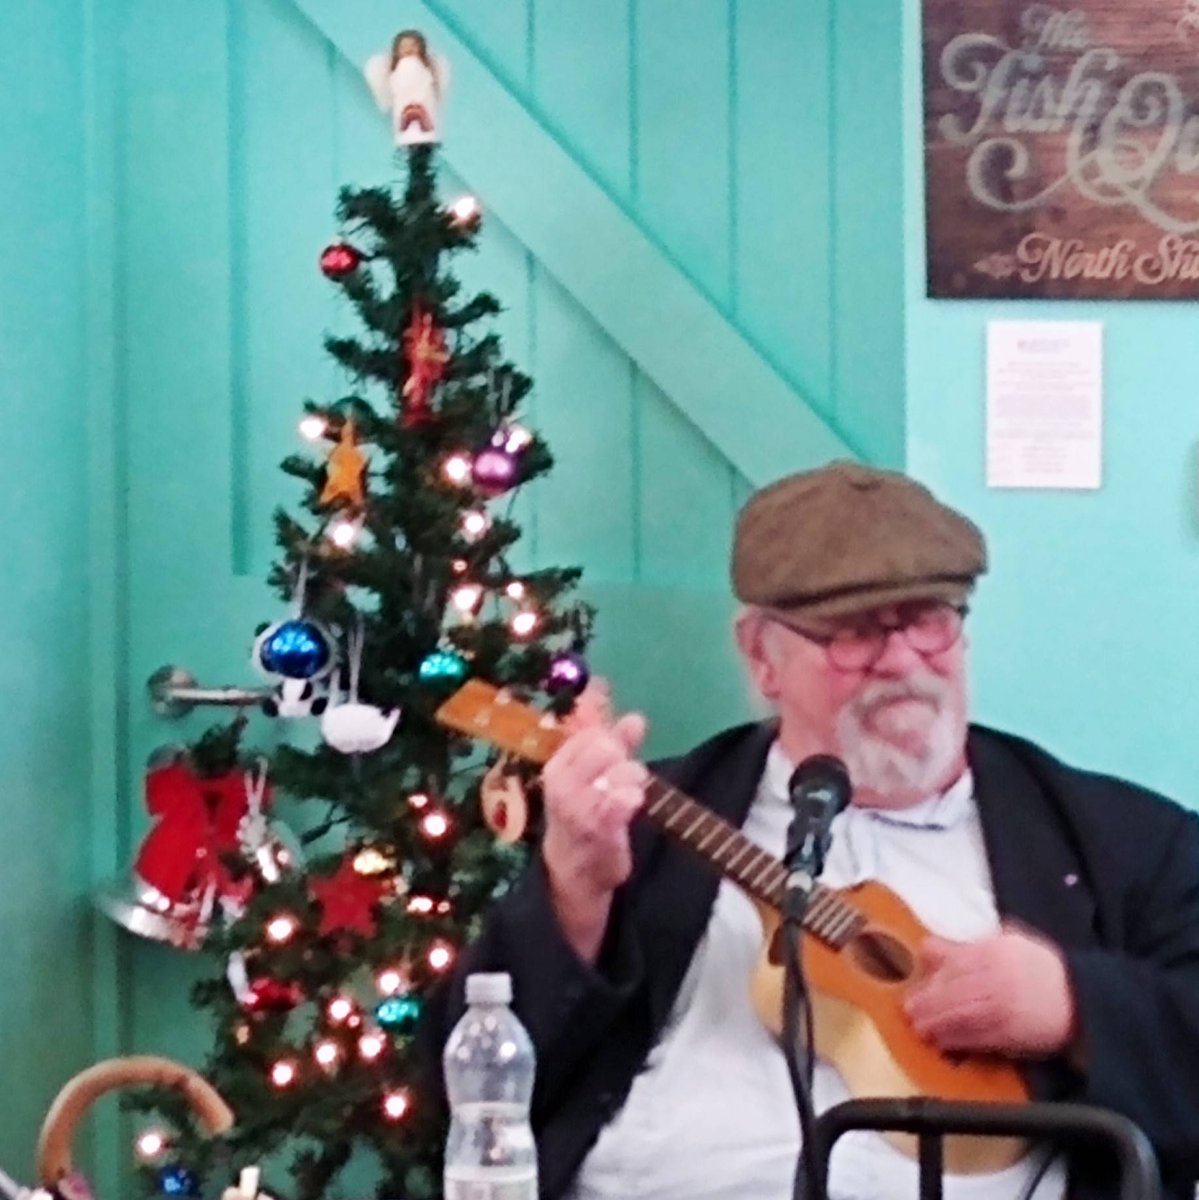 Christine Jeans and George Welch were entertaining a good crowd of fans in the @Old_LowLight Heritage Centre cafe today - from traditional Shields tunes to Steppenwolf. Thanks for all your music during 2019. #NorthShields #OneNorthShields #musicpic.twitter.com/McjAm3fIaj